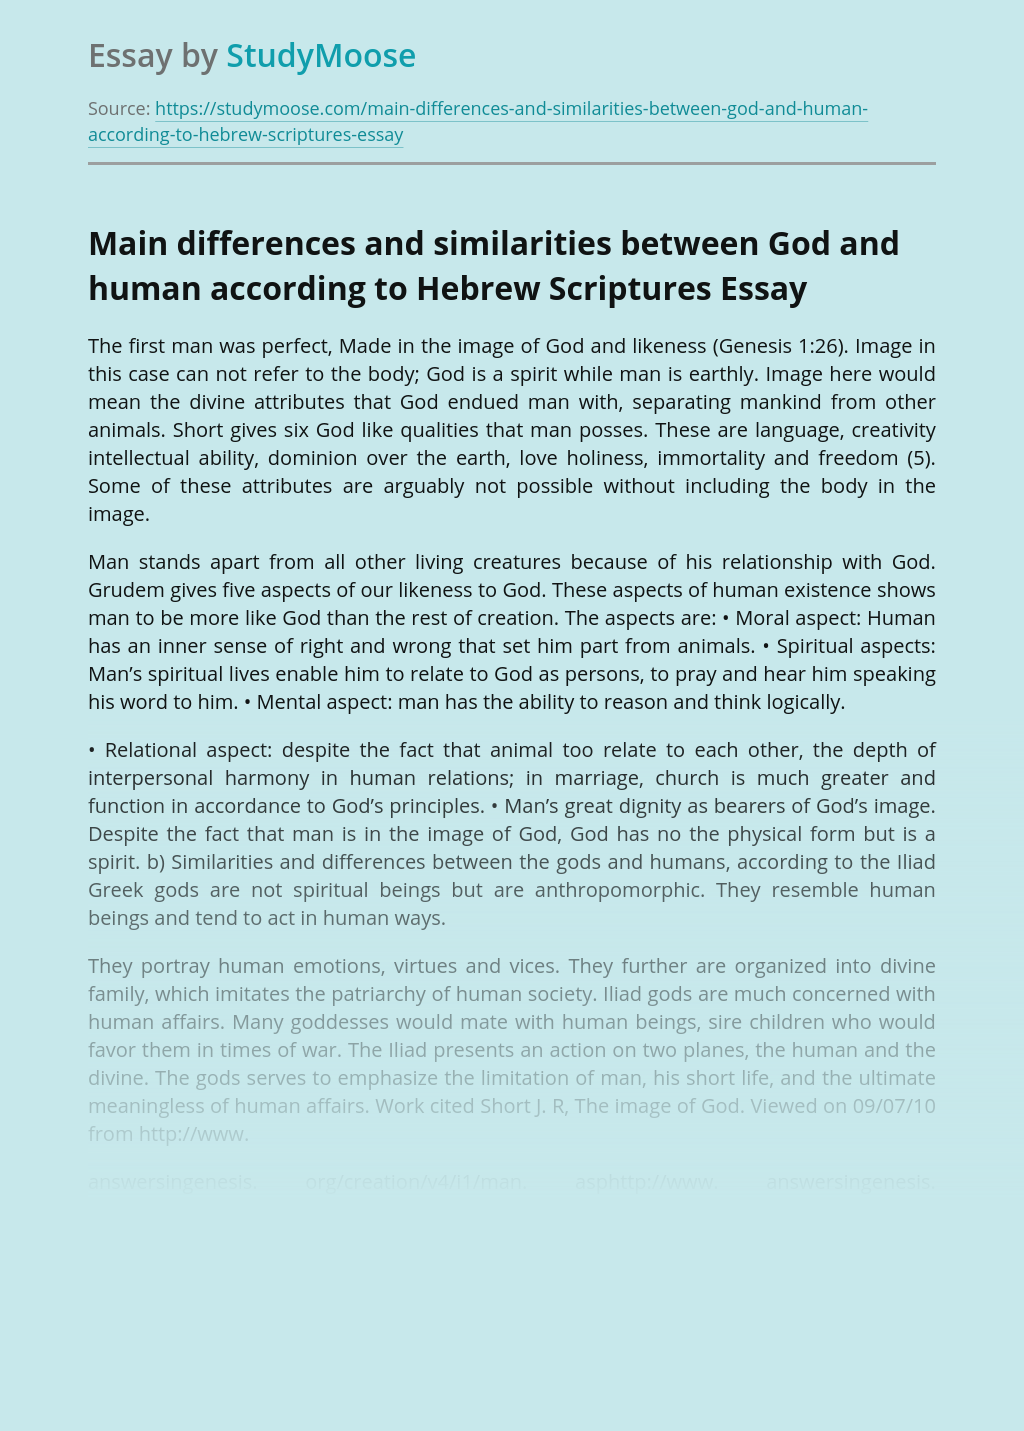 Main differences and similarities between God and human according to Hebrew Scriptures